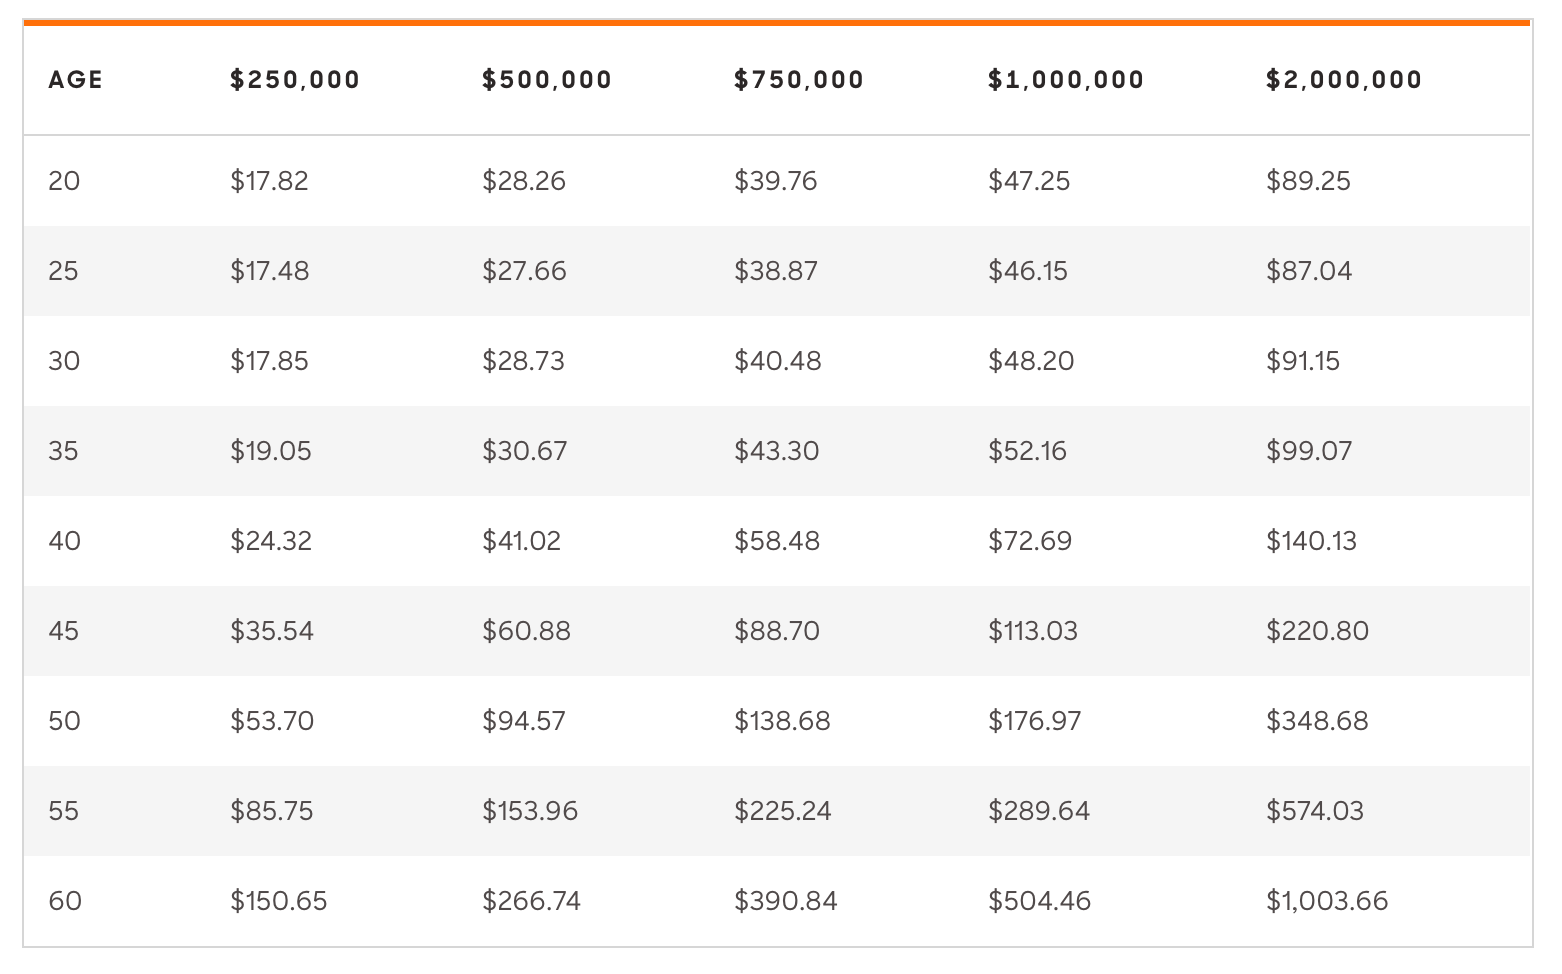 How Much Does Life Insurance Cost For Men By Age